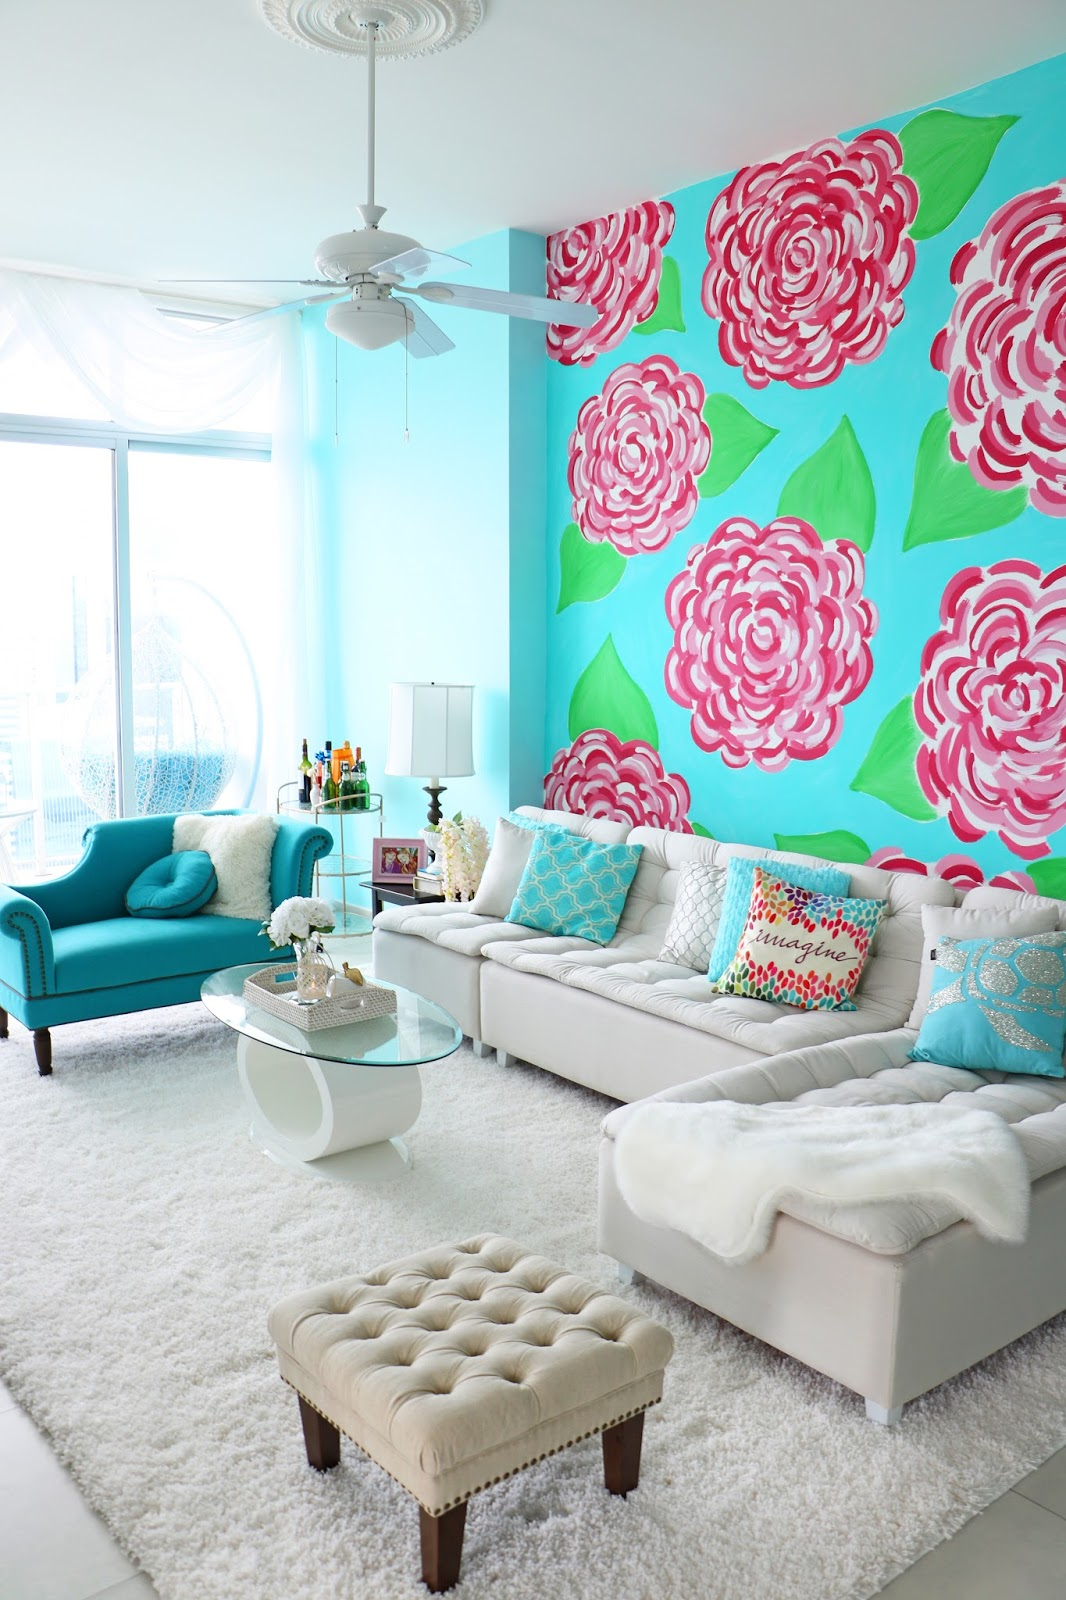 Don't be abraid to add a lot of bright colors to your living room space!